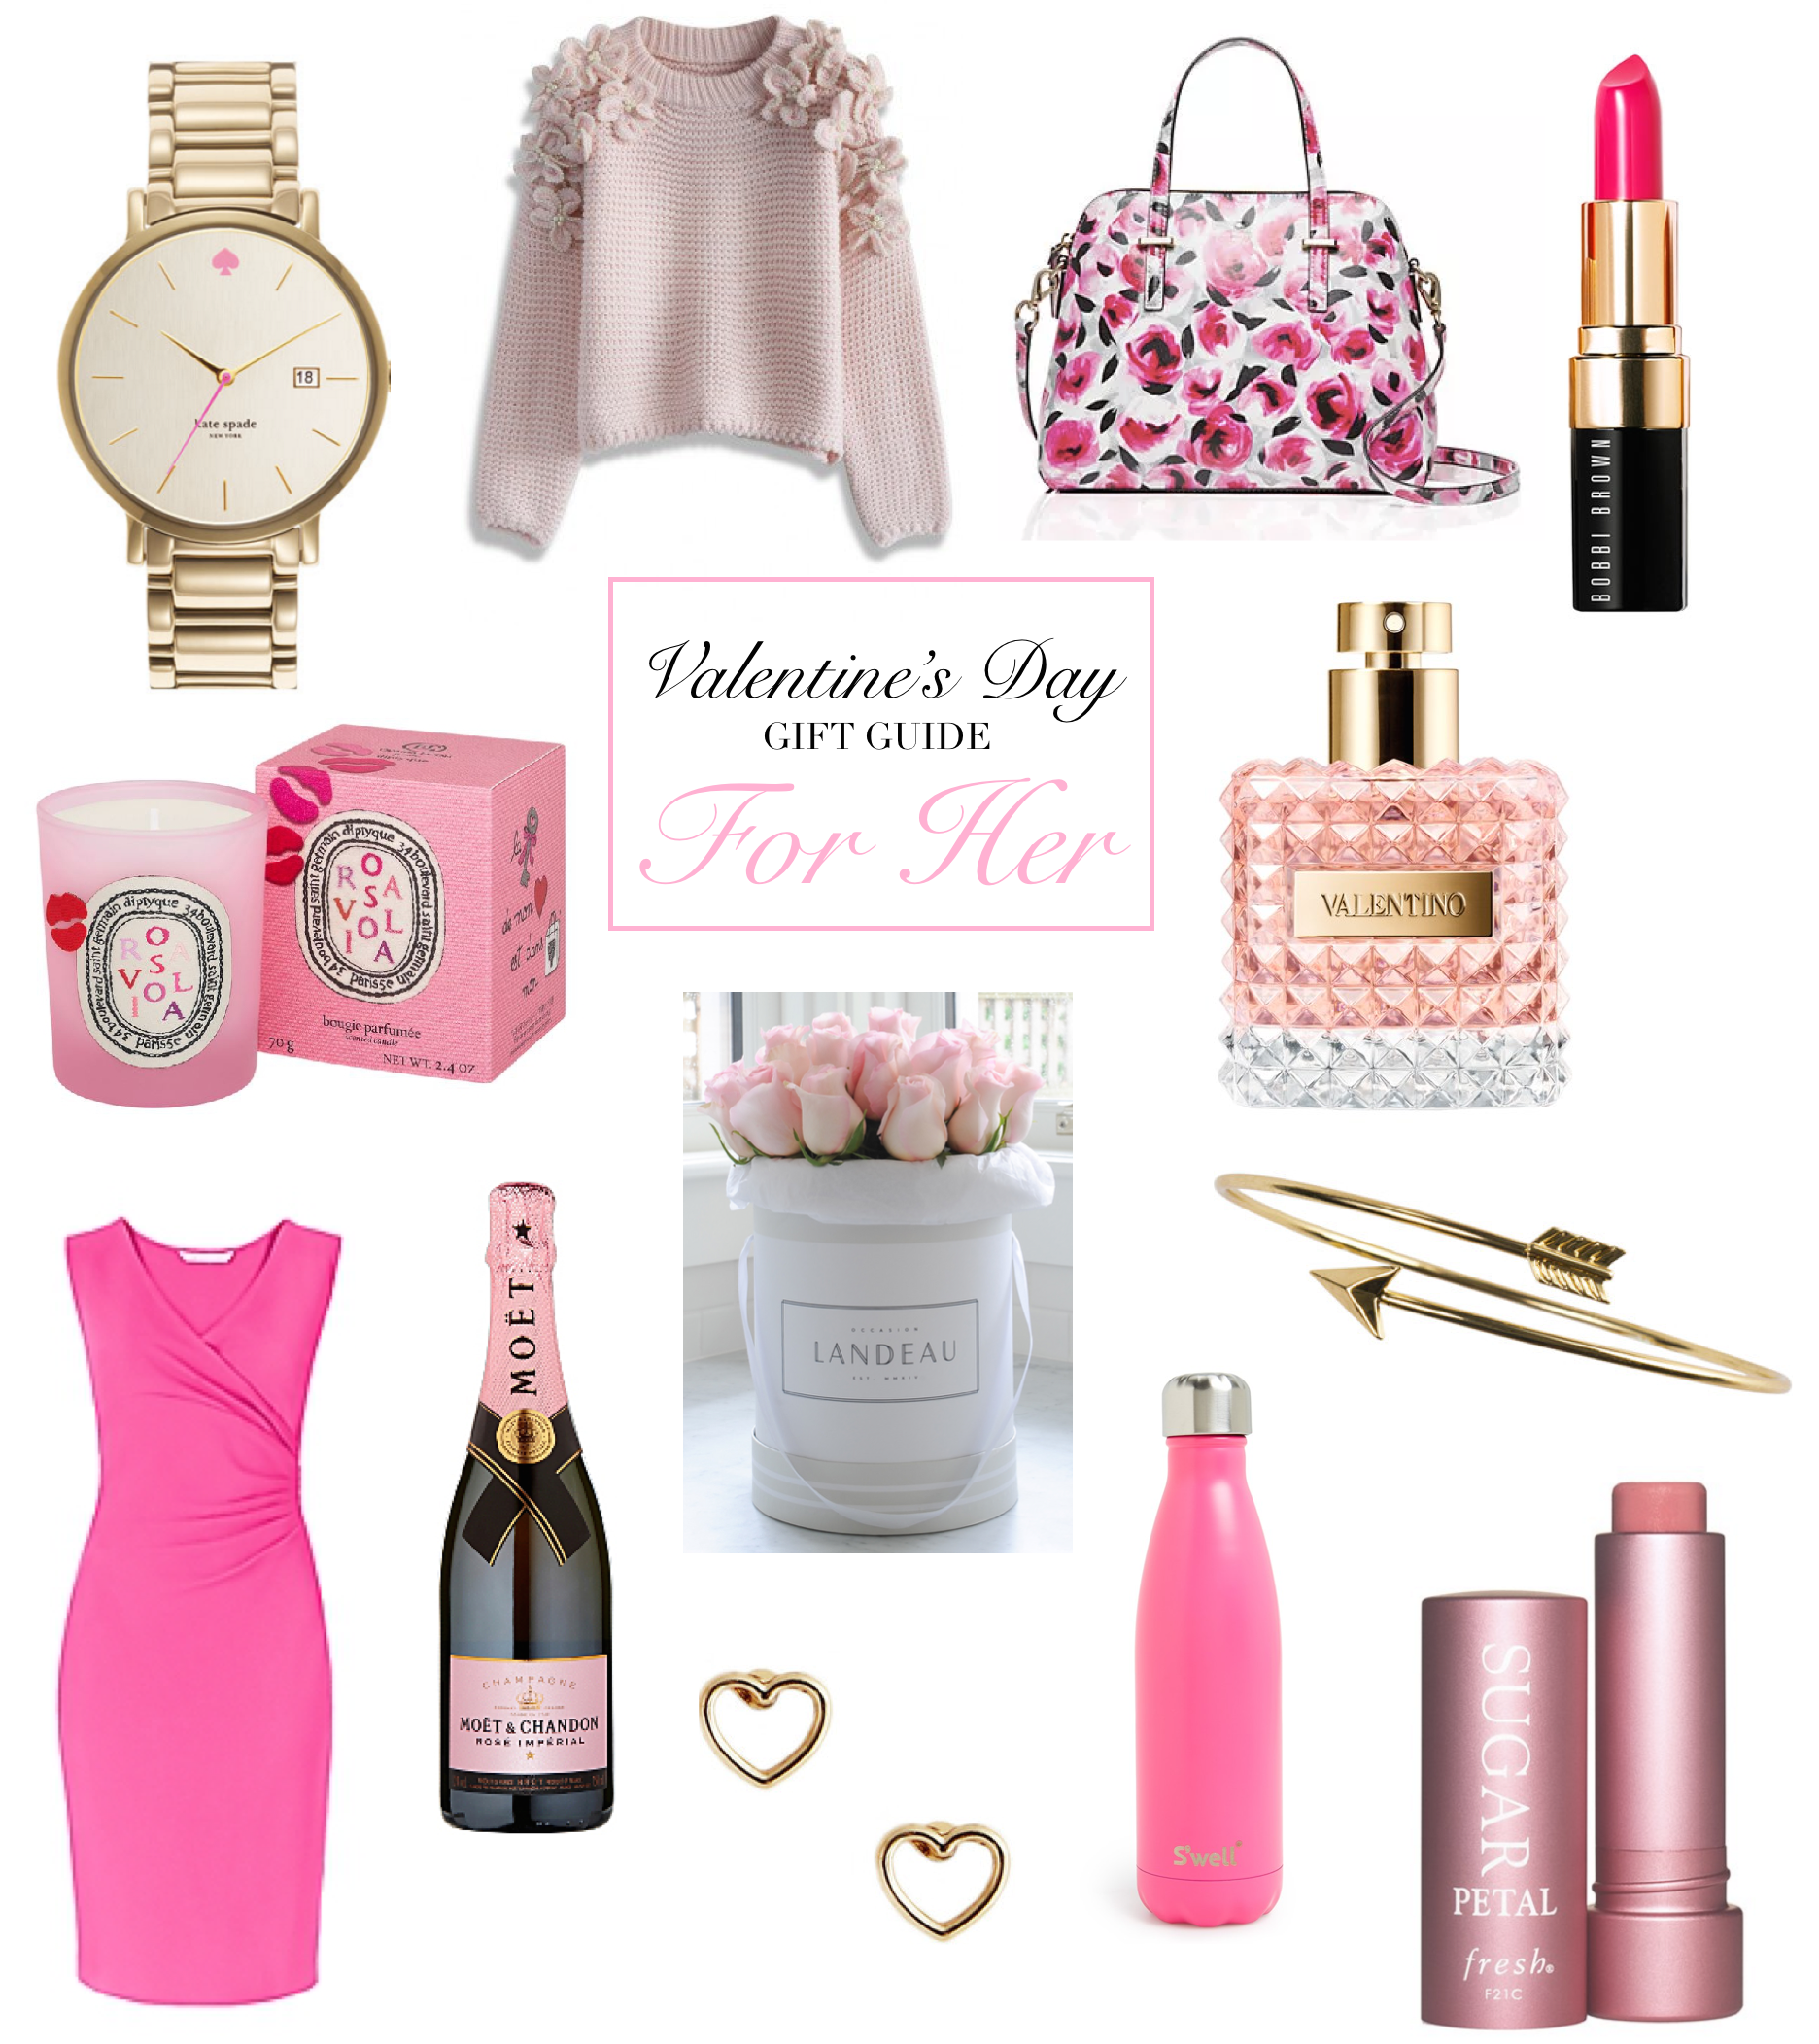 valentine's day gift guide for her 2016 2